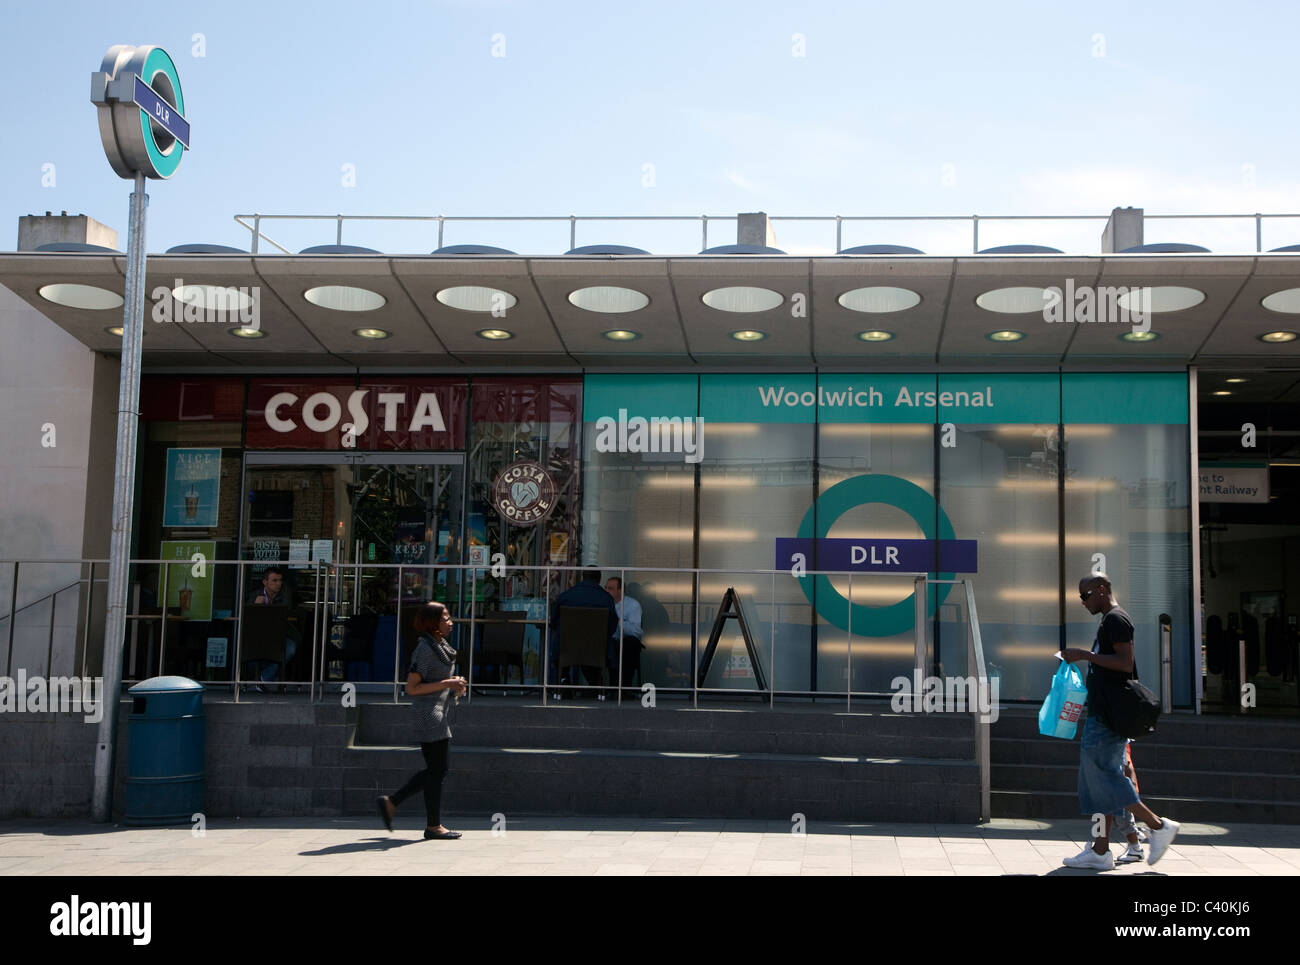 Woolwich Arsenal Docklands Light Railway station, London - Stock Image